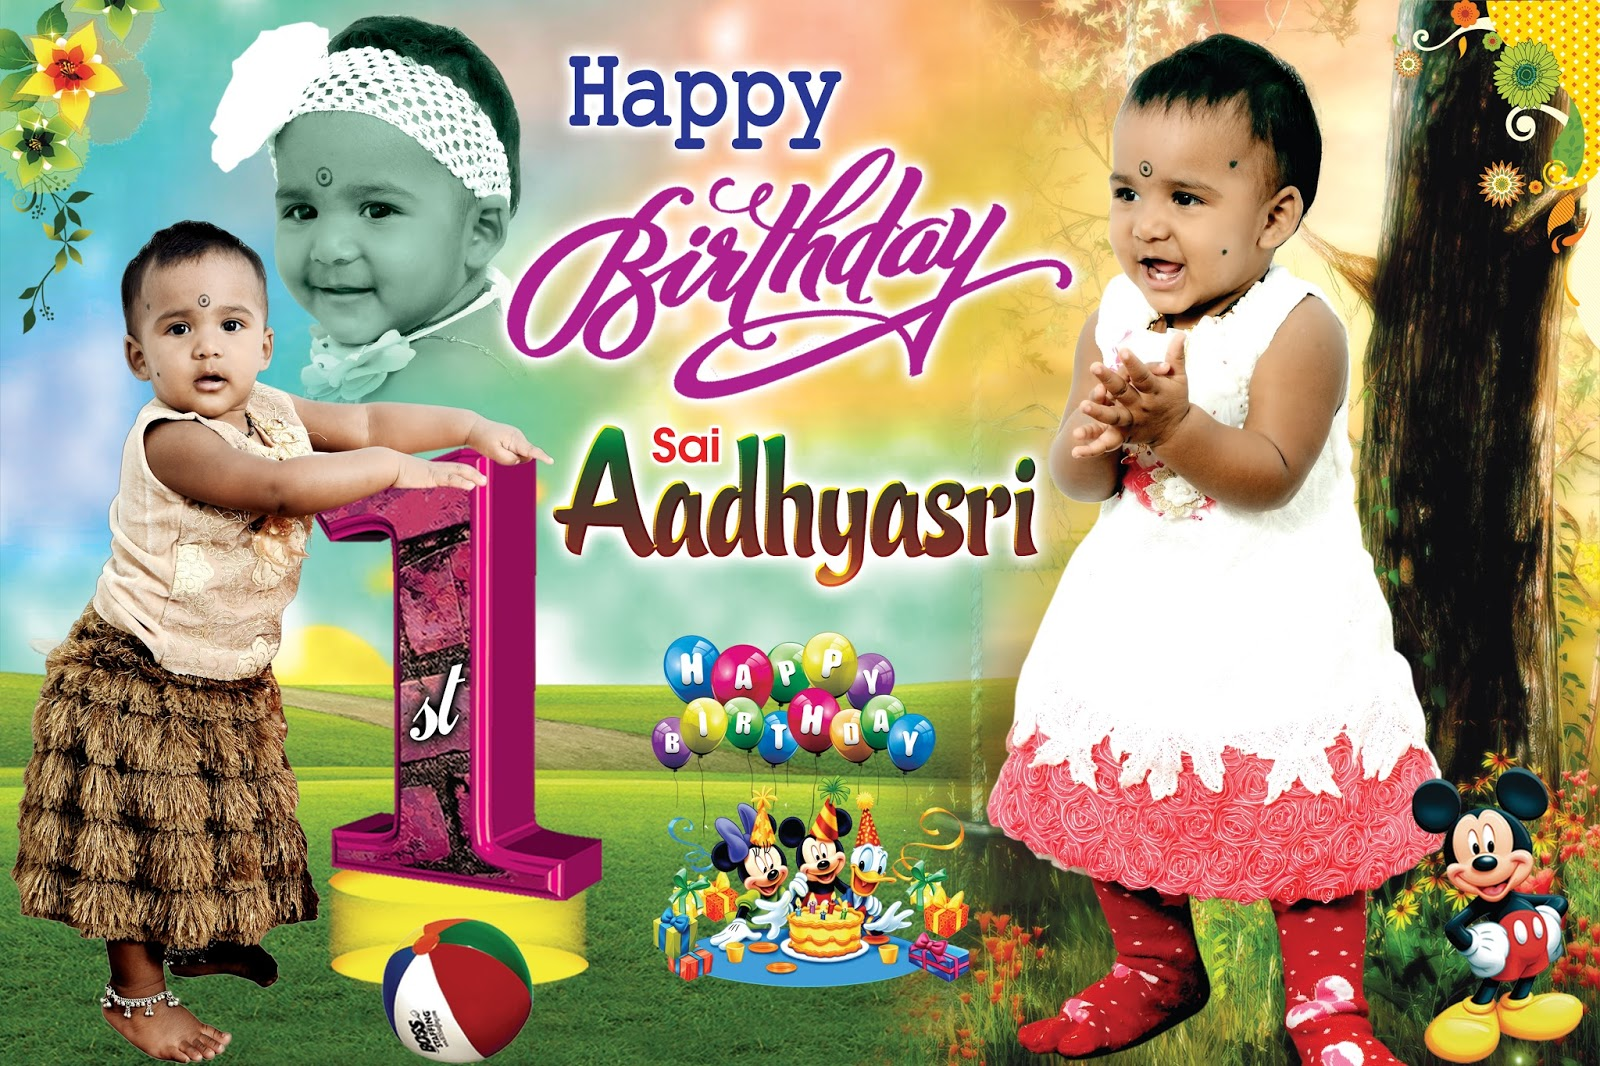 1st happy birthday flex designs ; birthday%2520flex%2520design%2520templates%2520;%2520birthday-invitation-flex-banner-design